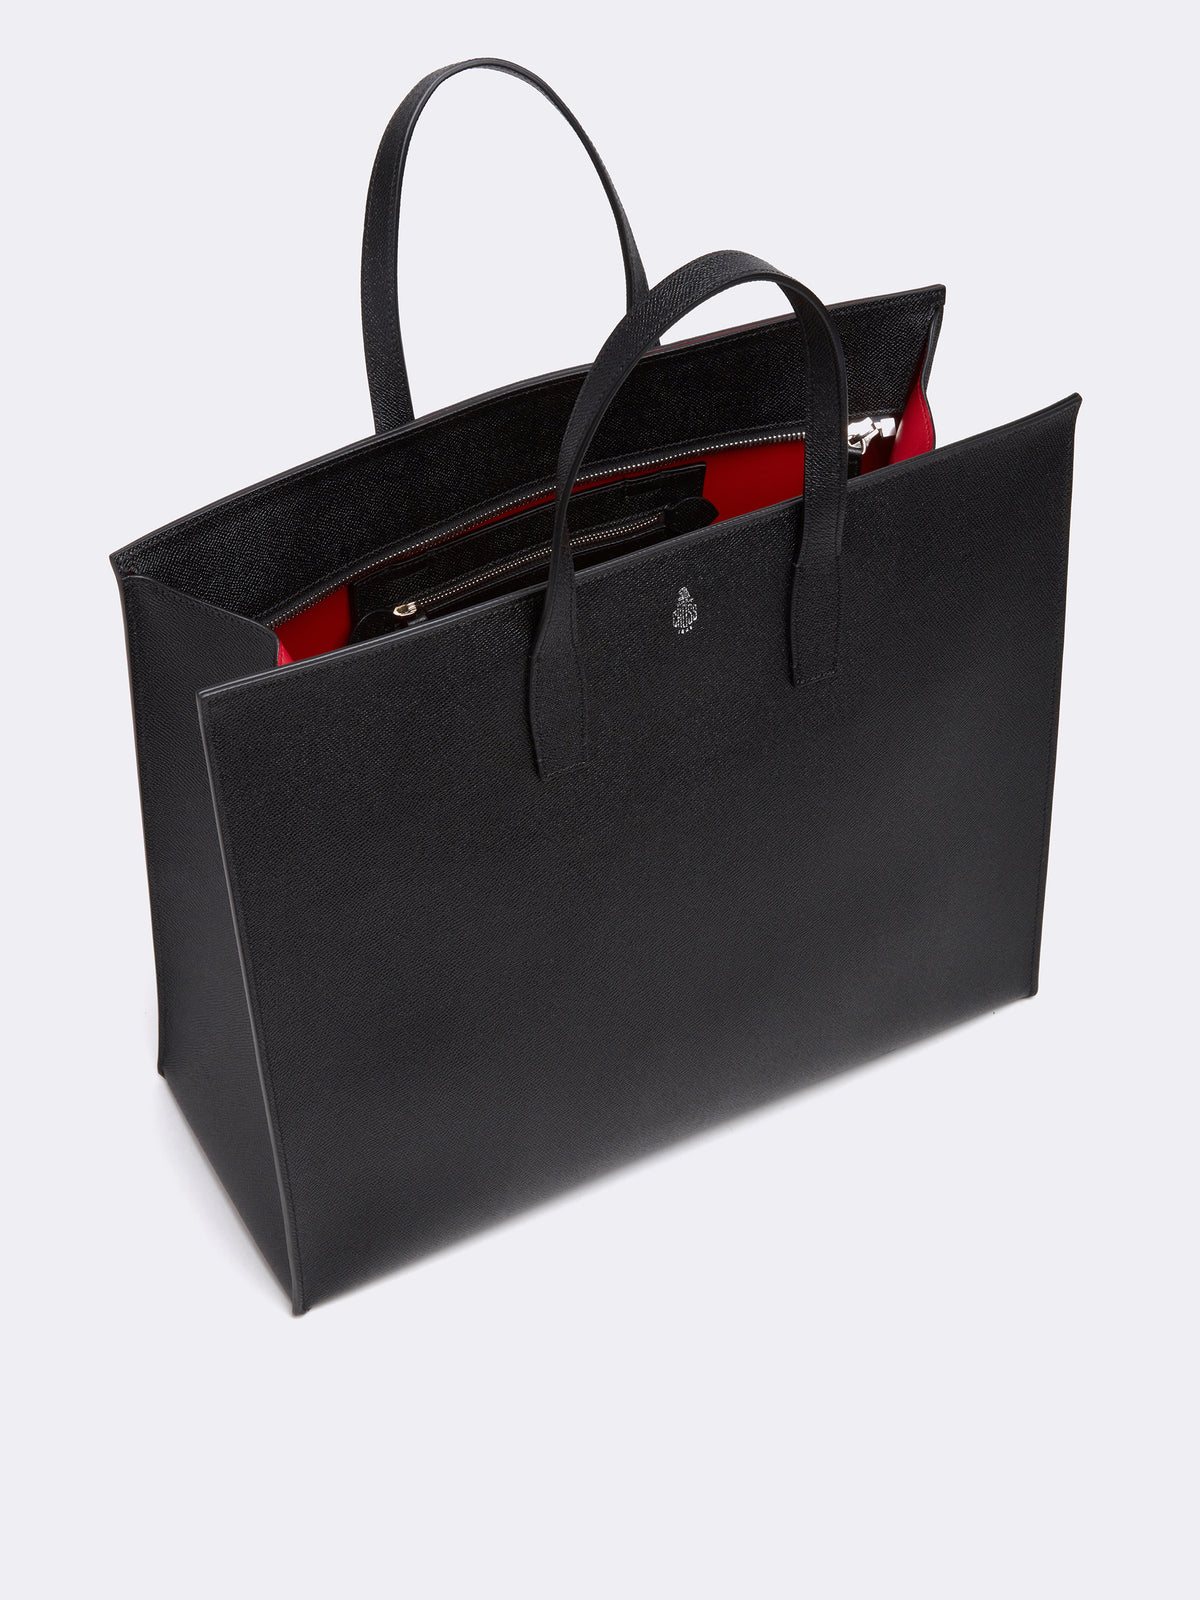 Mark Cross Fitzgerald East West Leather Tote Saffiano Black Interior